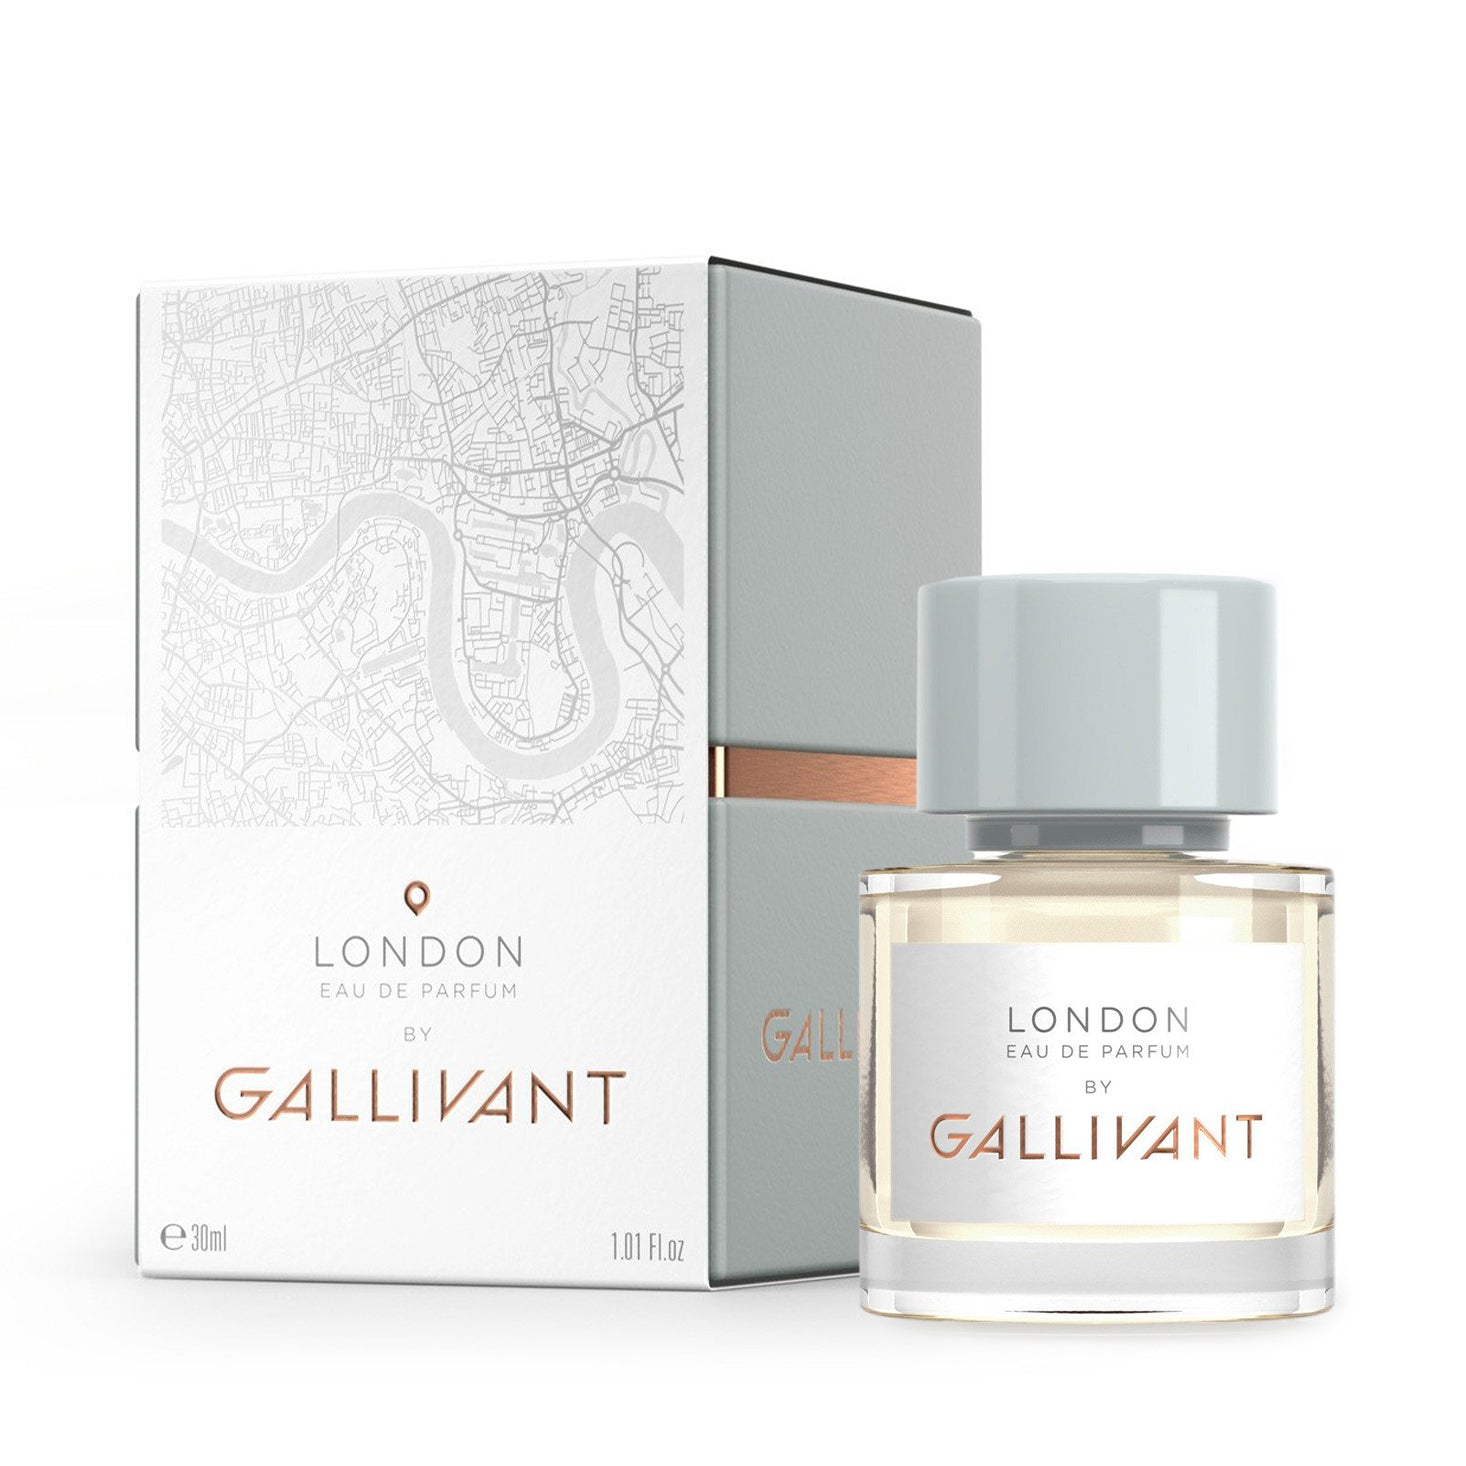 Gallivant London Eau de Parfum